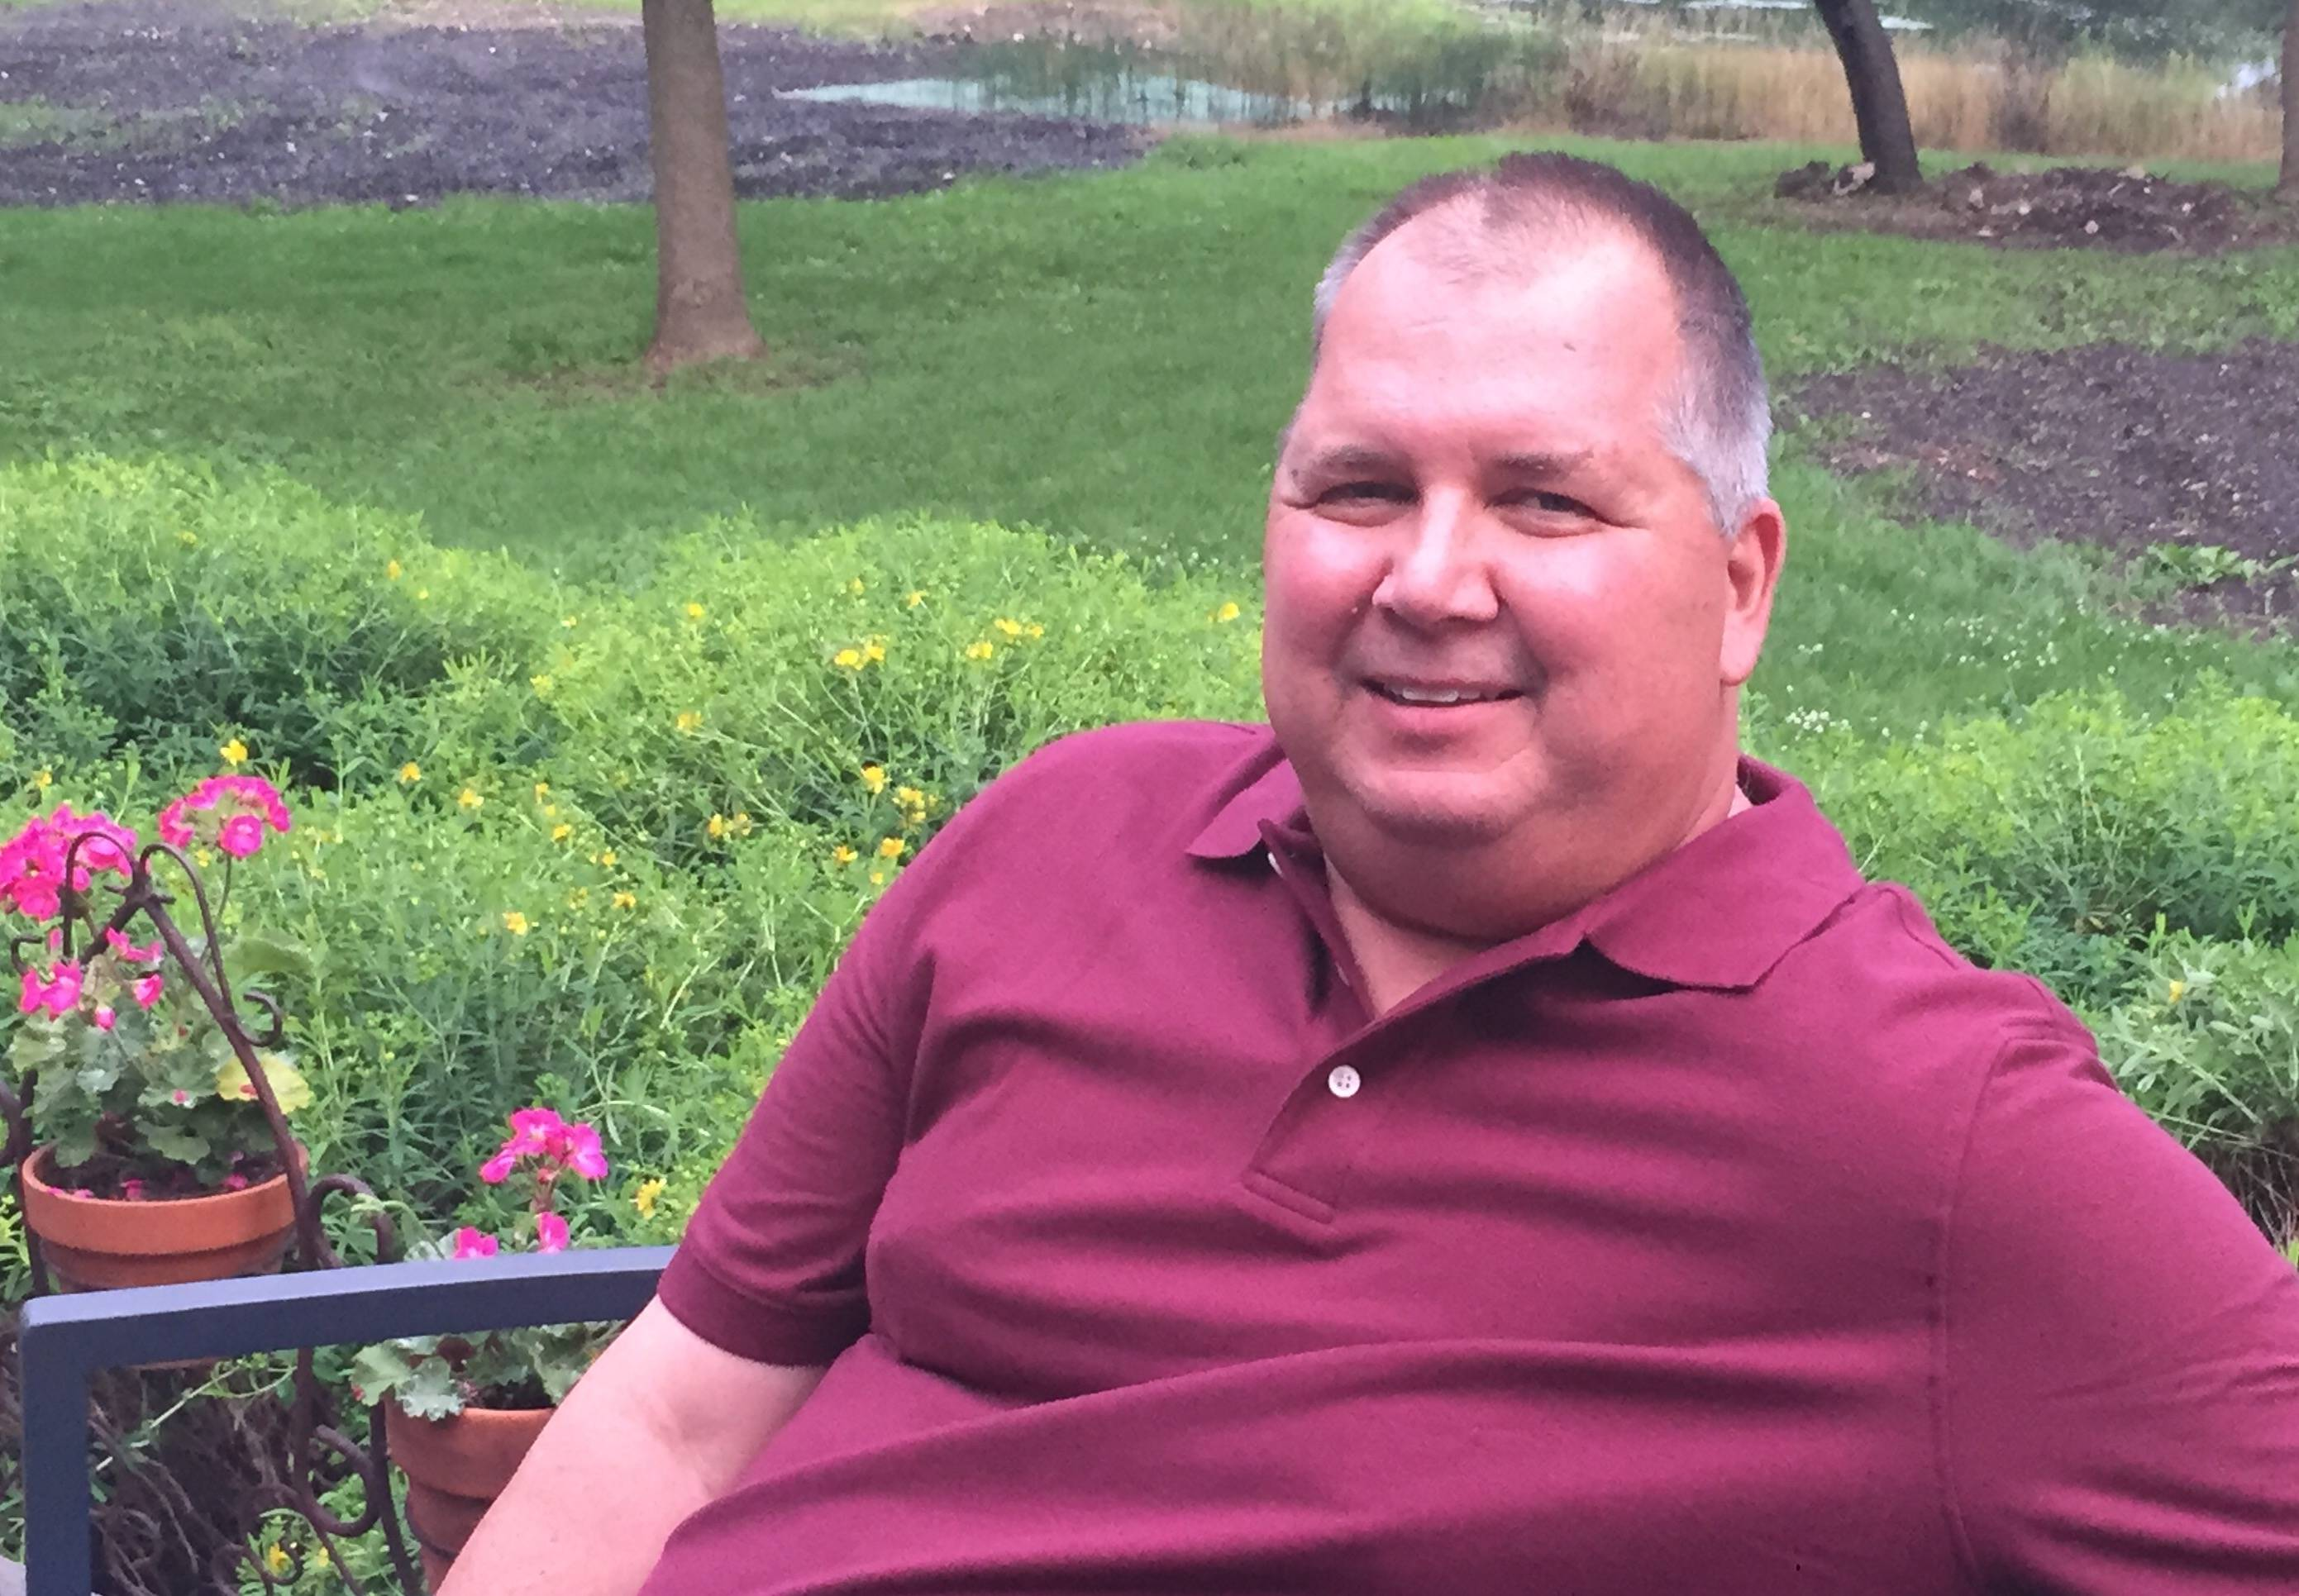 In April, Greg Karr, St. Charles resident and Elgin dentist, was diagnosed with glioblastoma, a cancerous brain tumor. He is undergoing treatment but has regained all functionality.